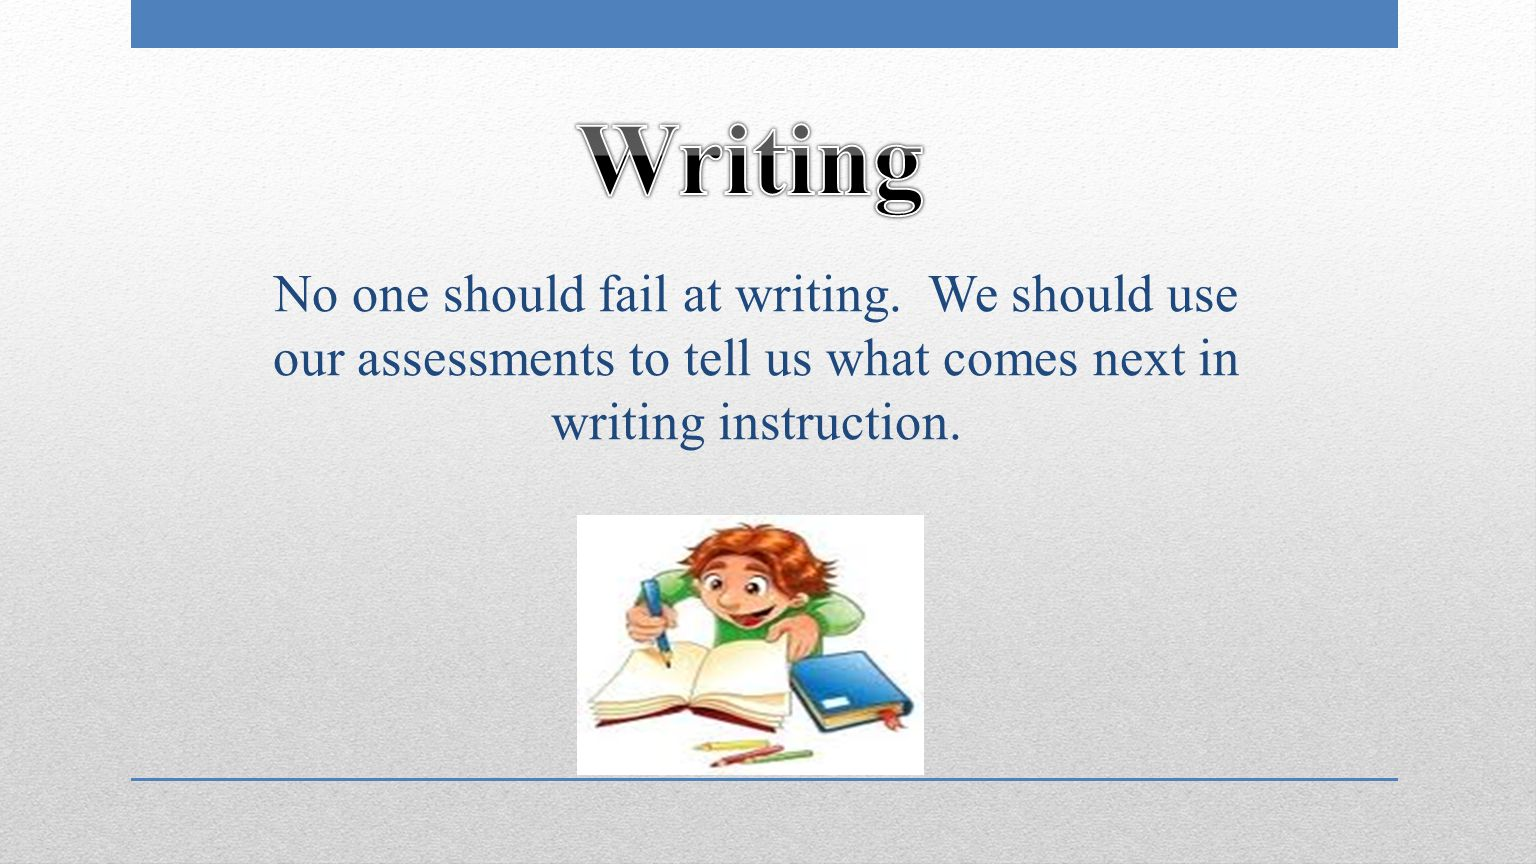 No one should fail at writing.